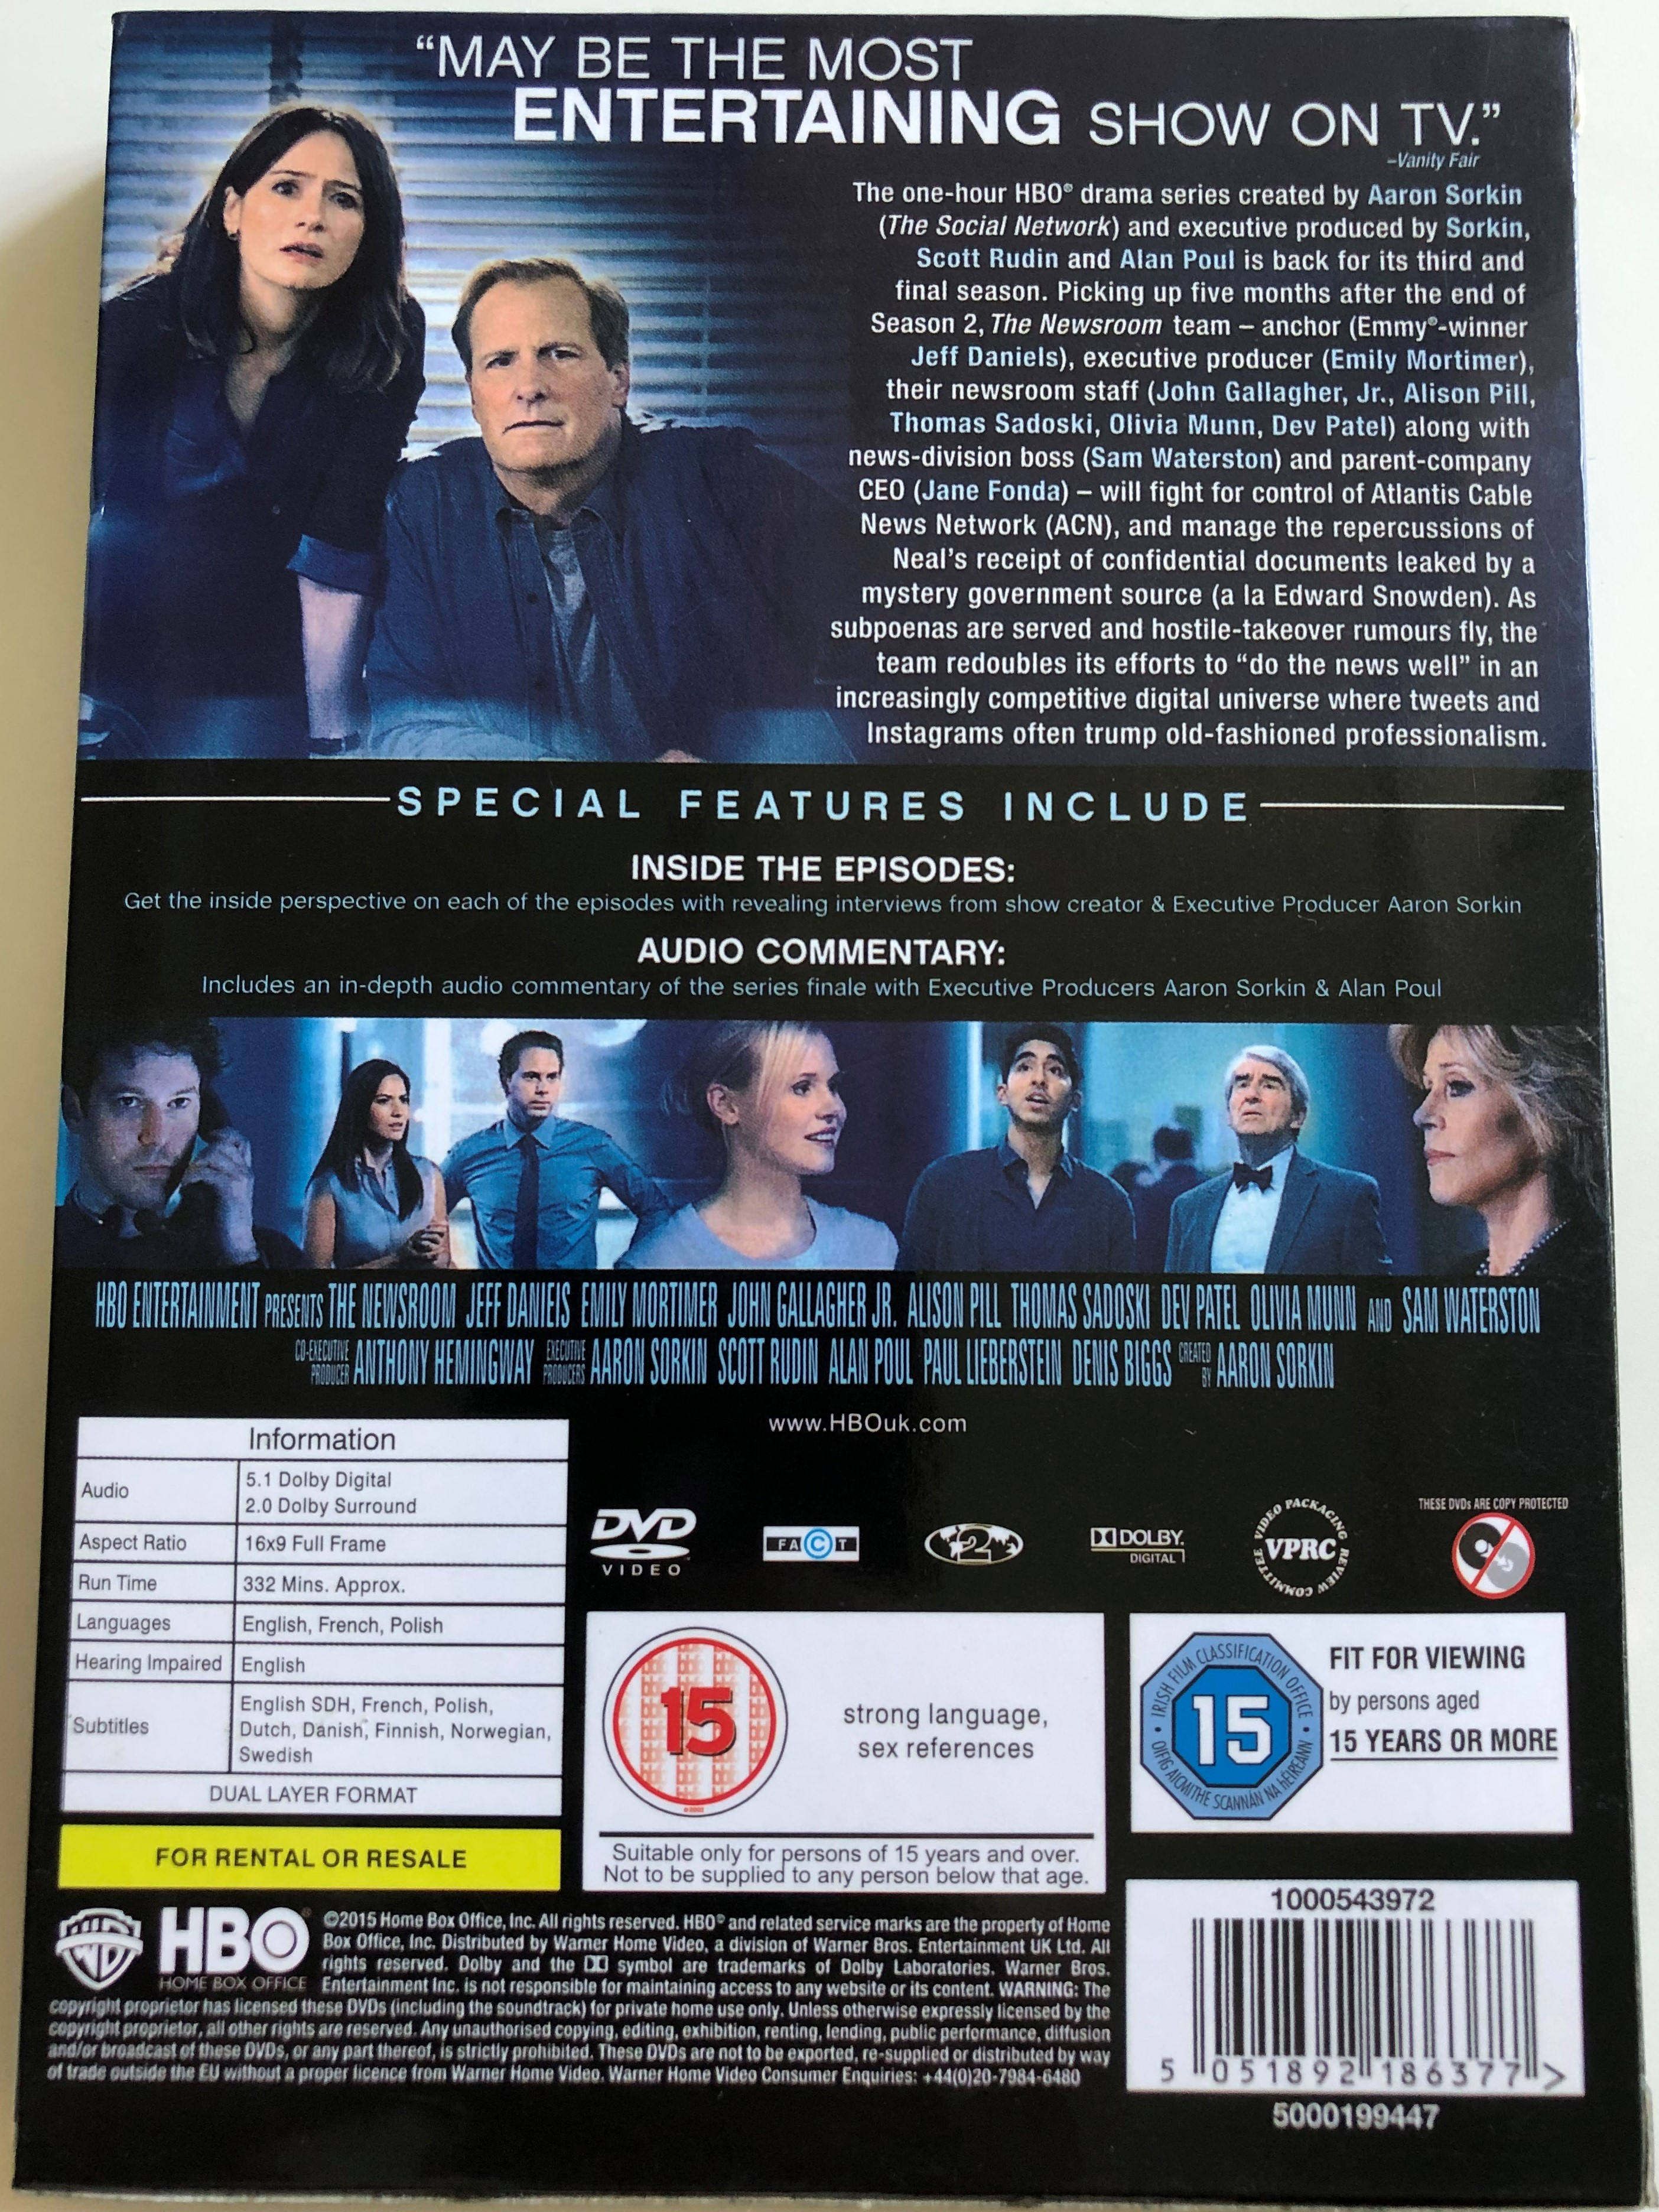 -the-newsroom-dvd-2015-the-complete-third-season-created-by-aaron-sorkin-a-hbo-original-series-every-story-needs-a-final-word-2-.jpg